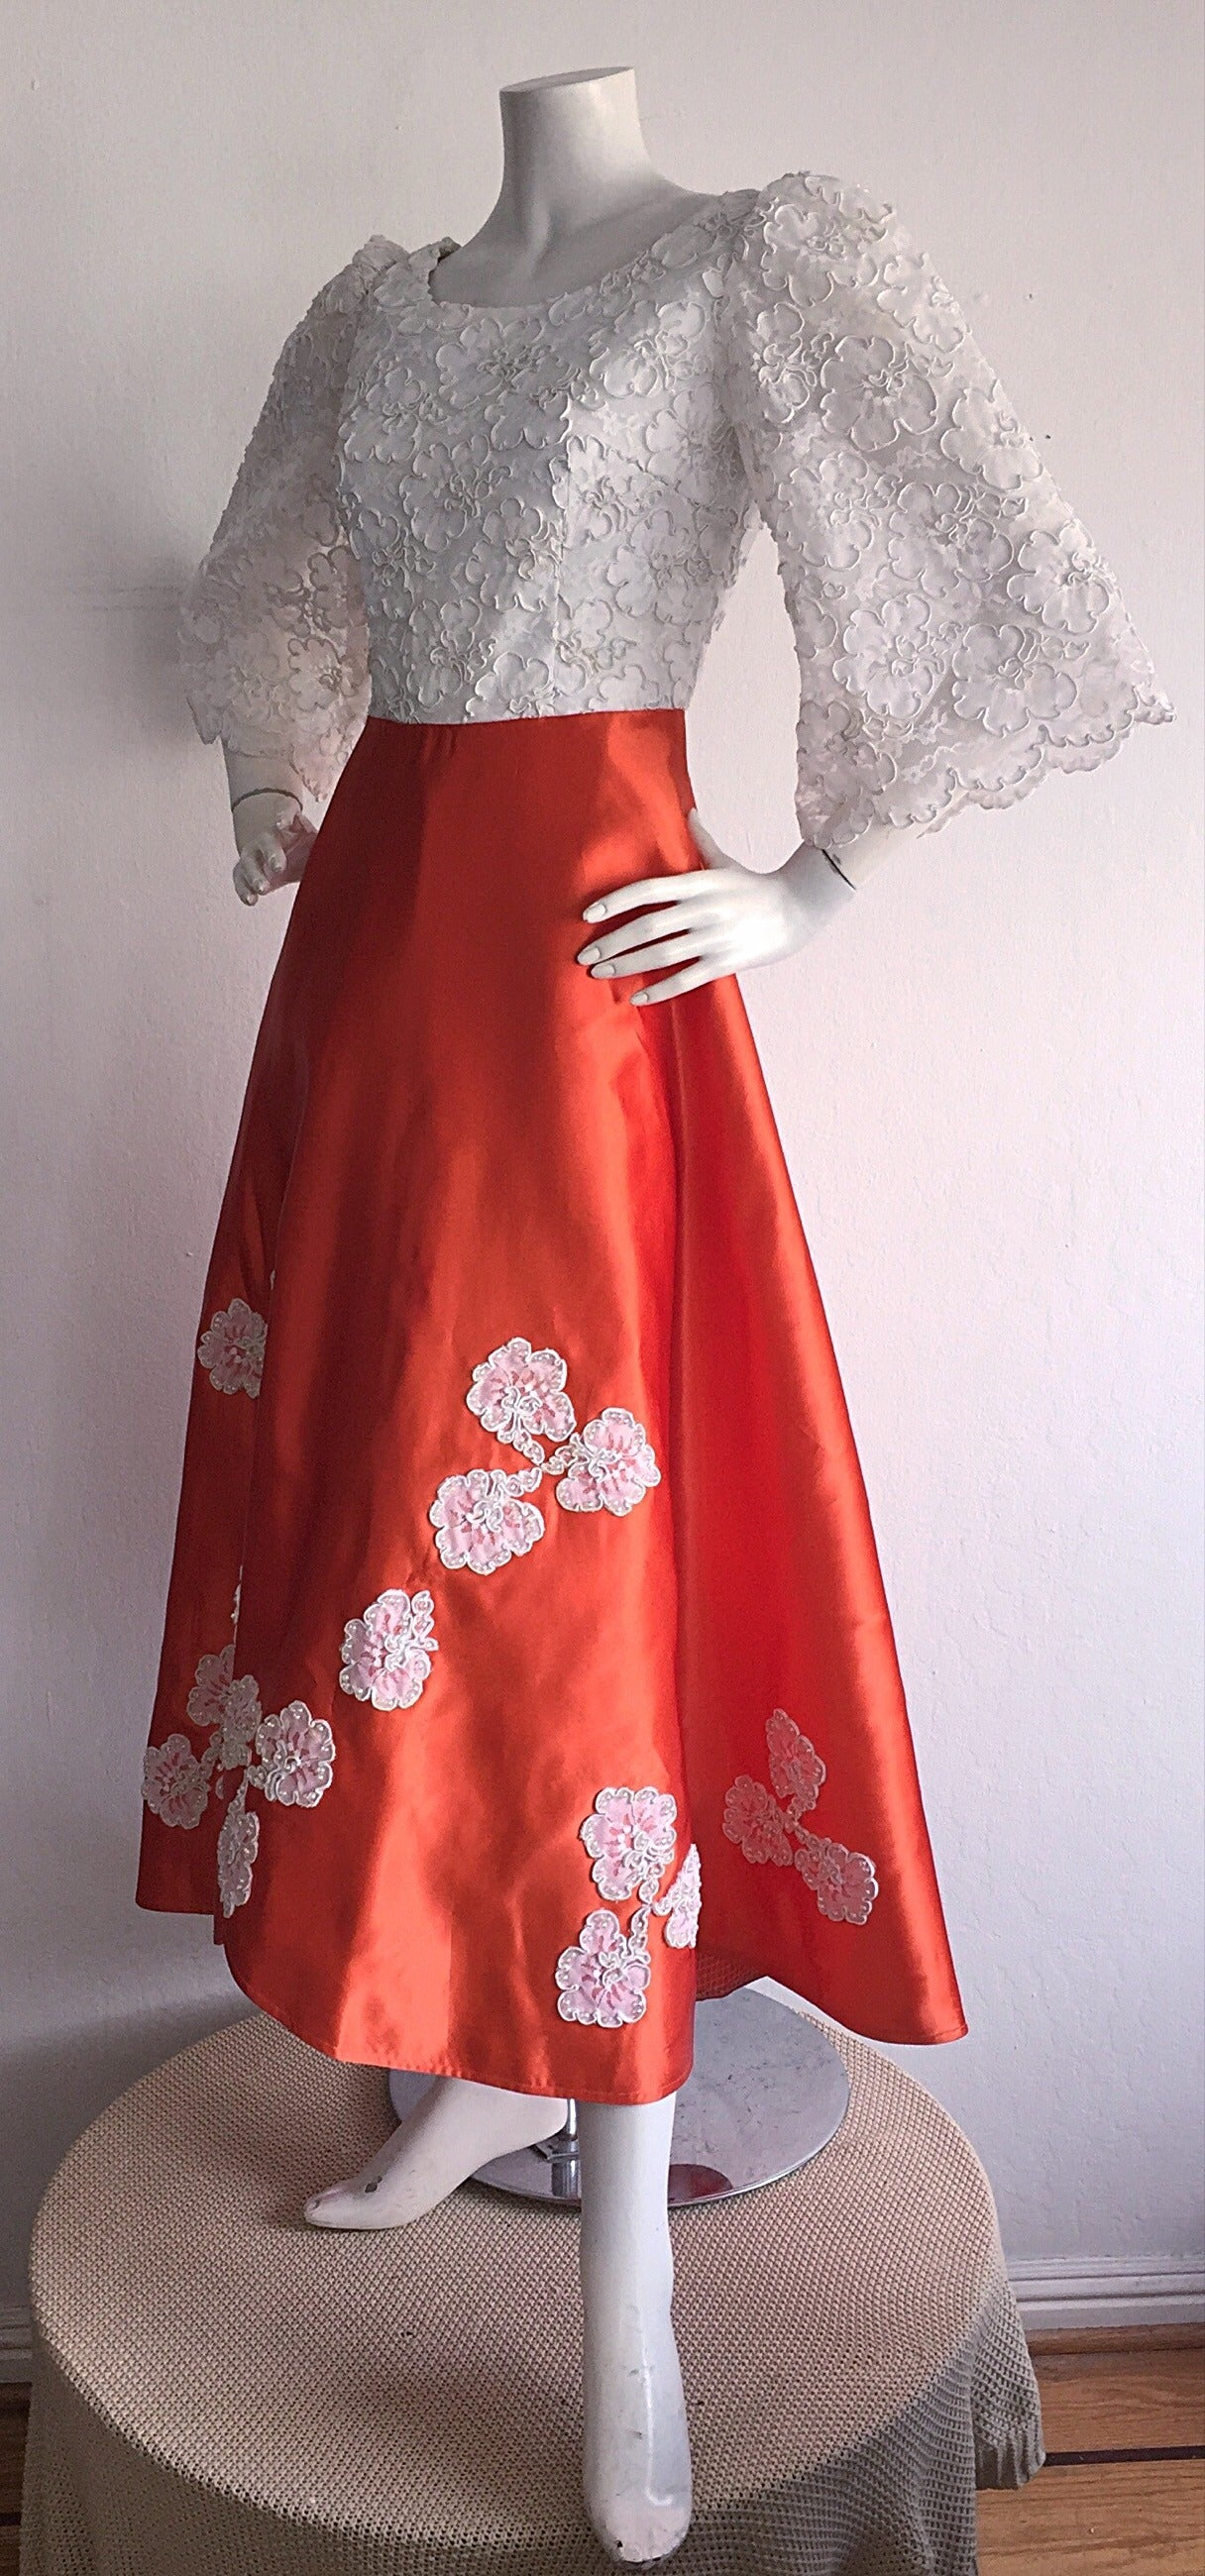 Red Gorgeous 1960s Orange Satin + White Lace Bell Sleeve Embellished Custom Dress For Sale